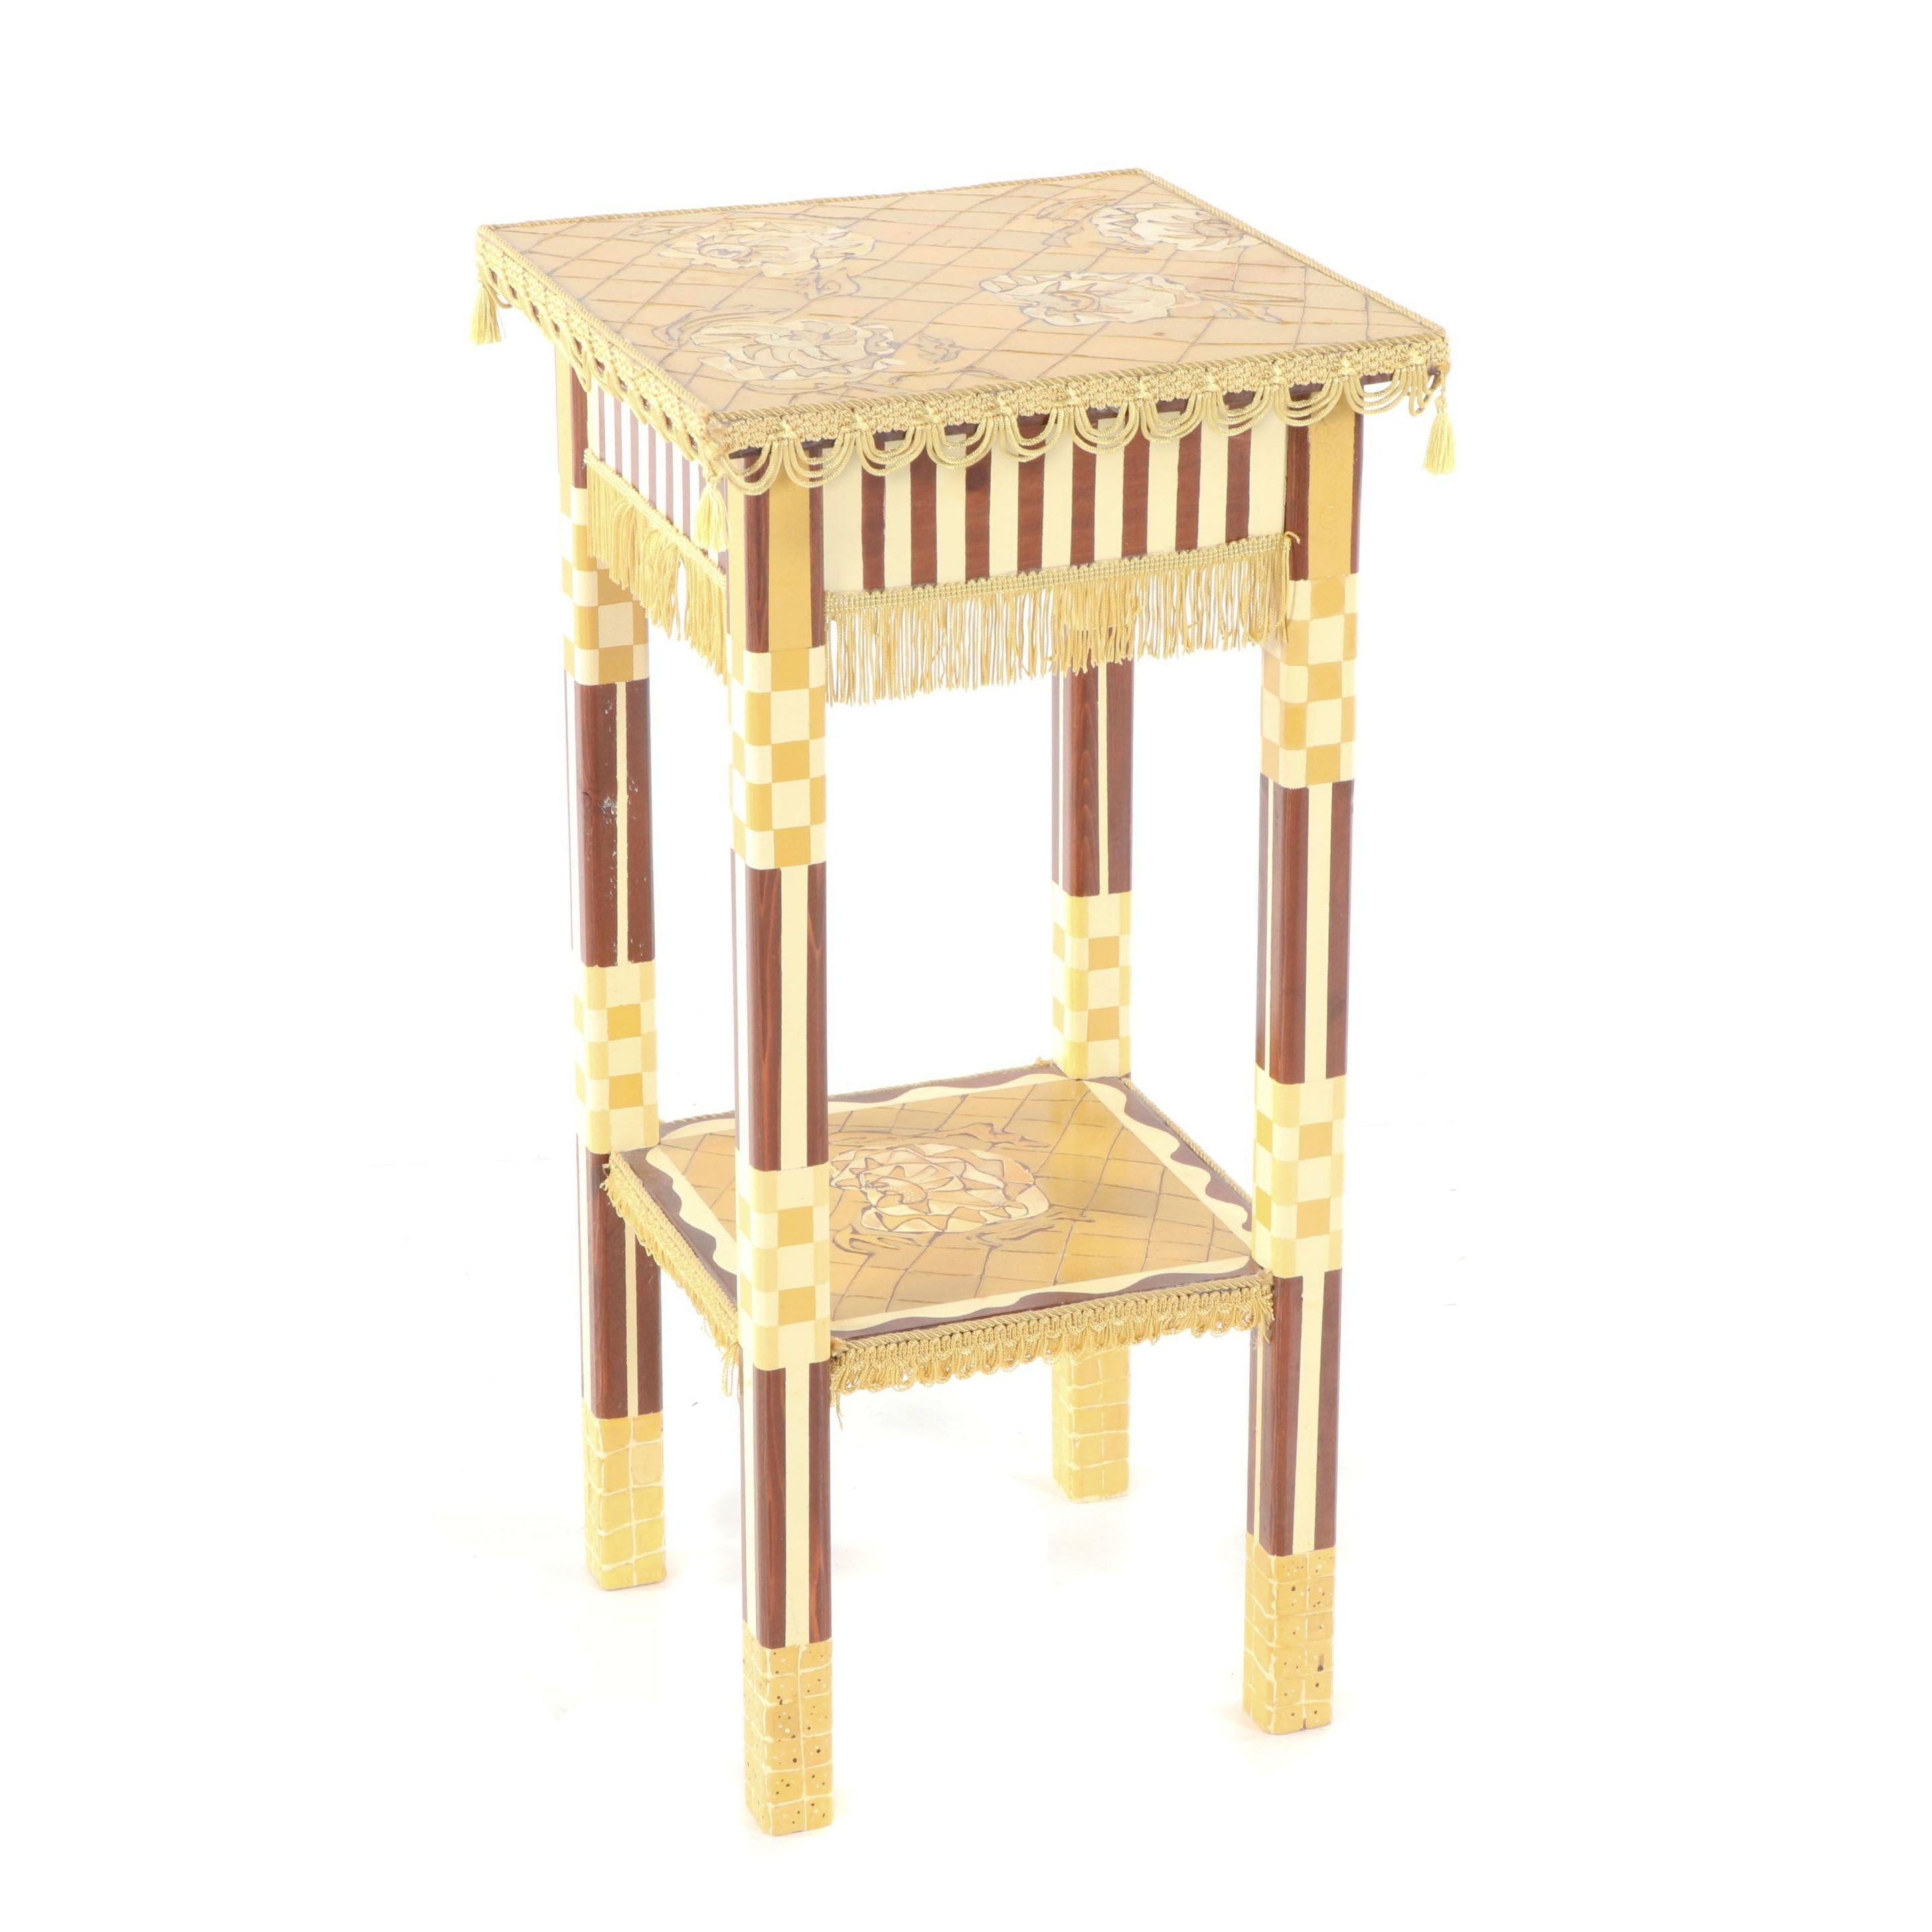 Painted Wood Two-Tier Side Table, 21st Century